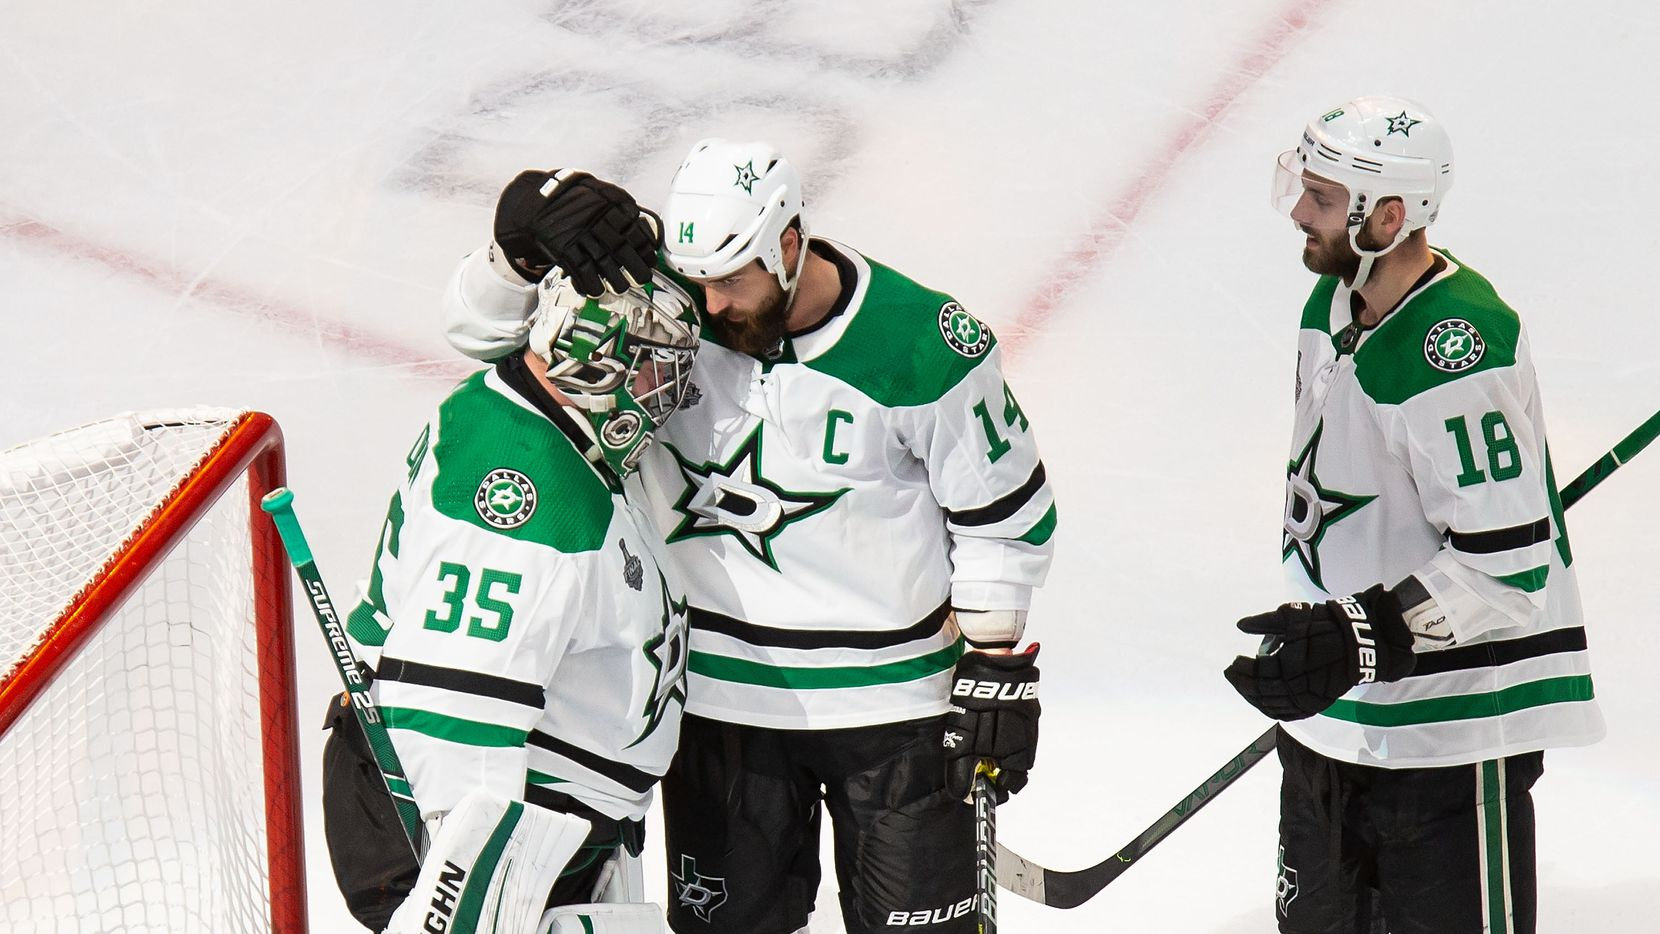 Goaltender Anton Khudobin (35), Jamie Benn (14) and Jason Dickinson (18) of the Dallas Stars celebrate their victory against the Tampa Bay Lightning during Game One of the Stanley Cup Final at Rogers Place in Edmonton, Alberta, Canada on Saturday, September 19, 2020. (Codie McLachlan/Special Contributor)